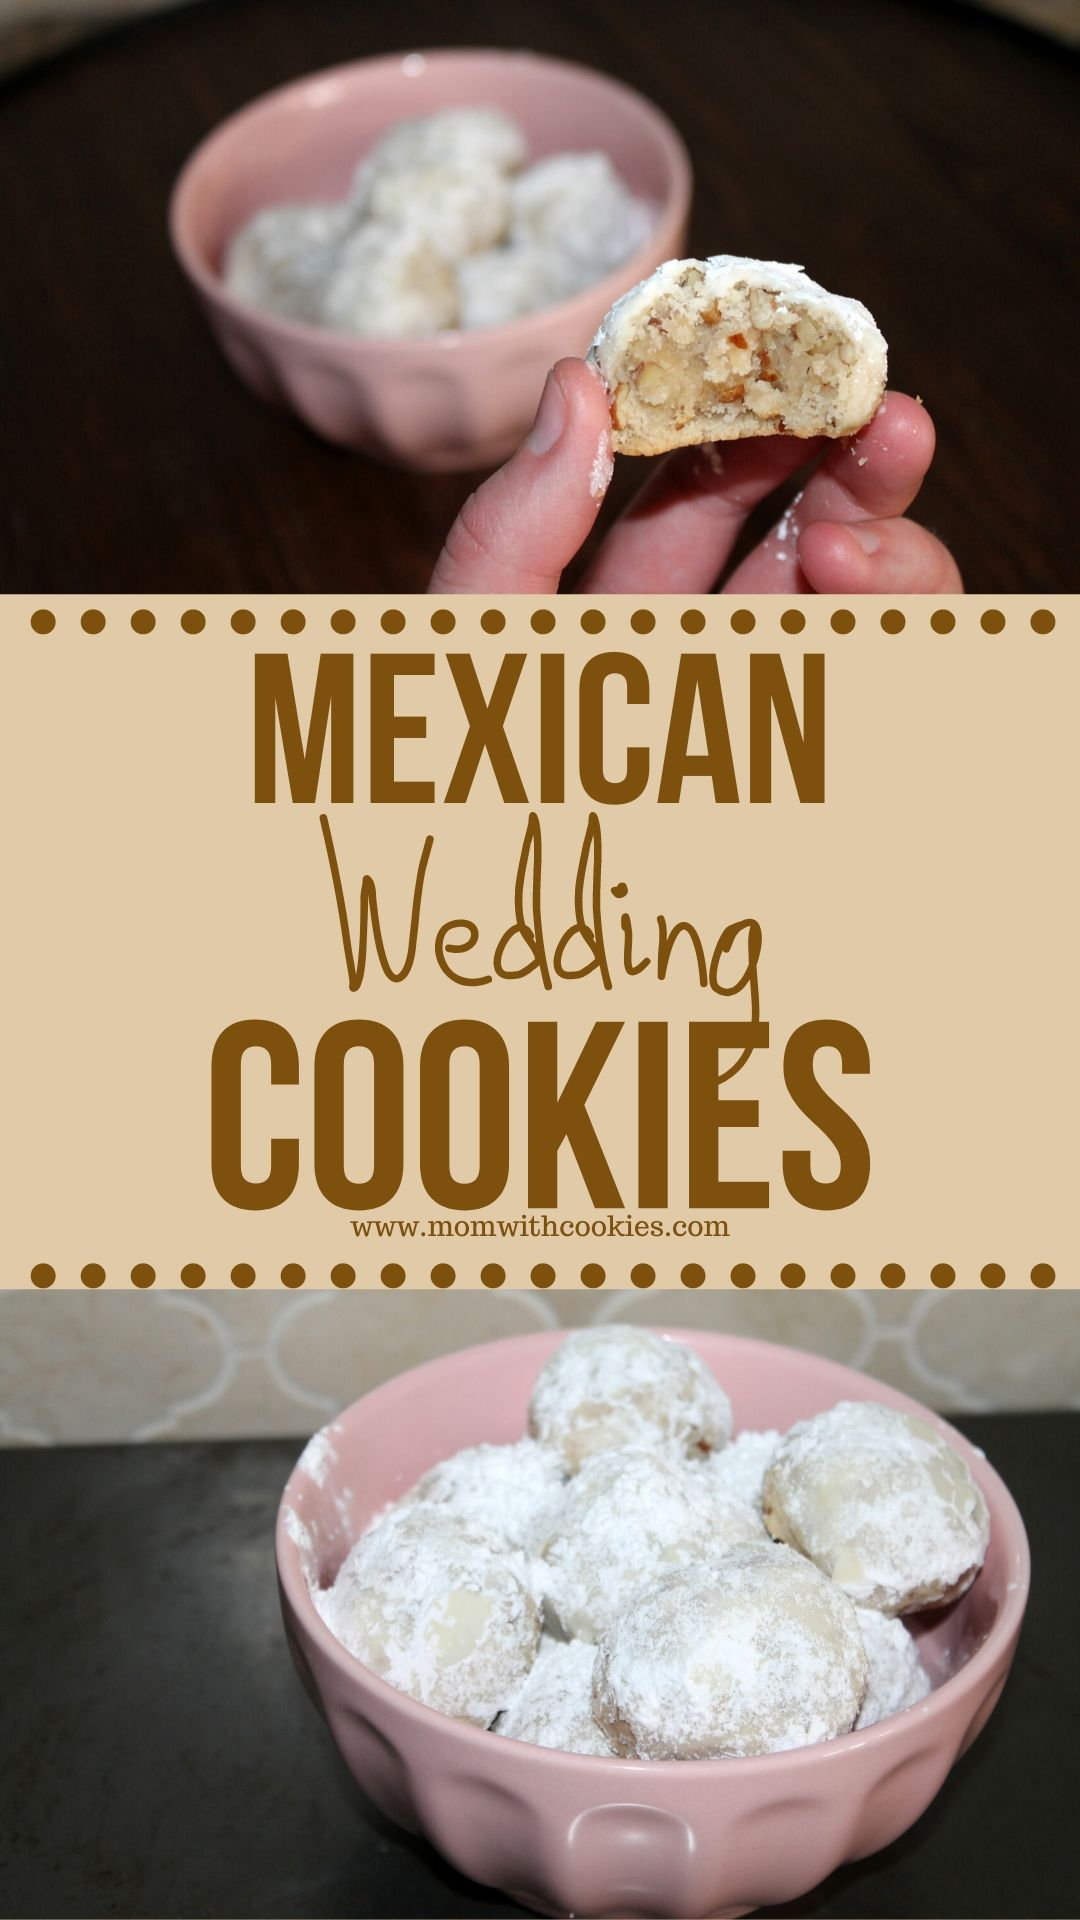 Mexican Wedding Cookies Recipe in 2020 (With images